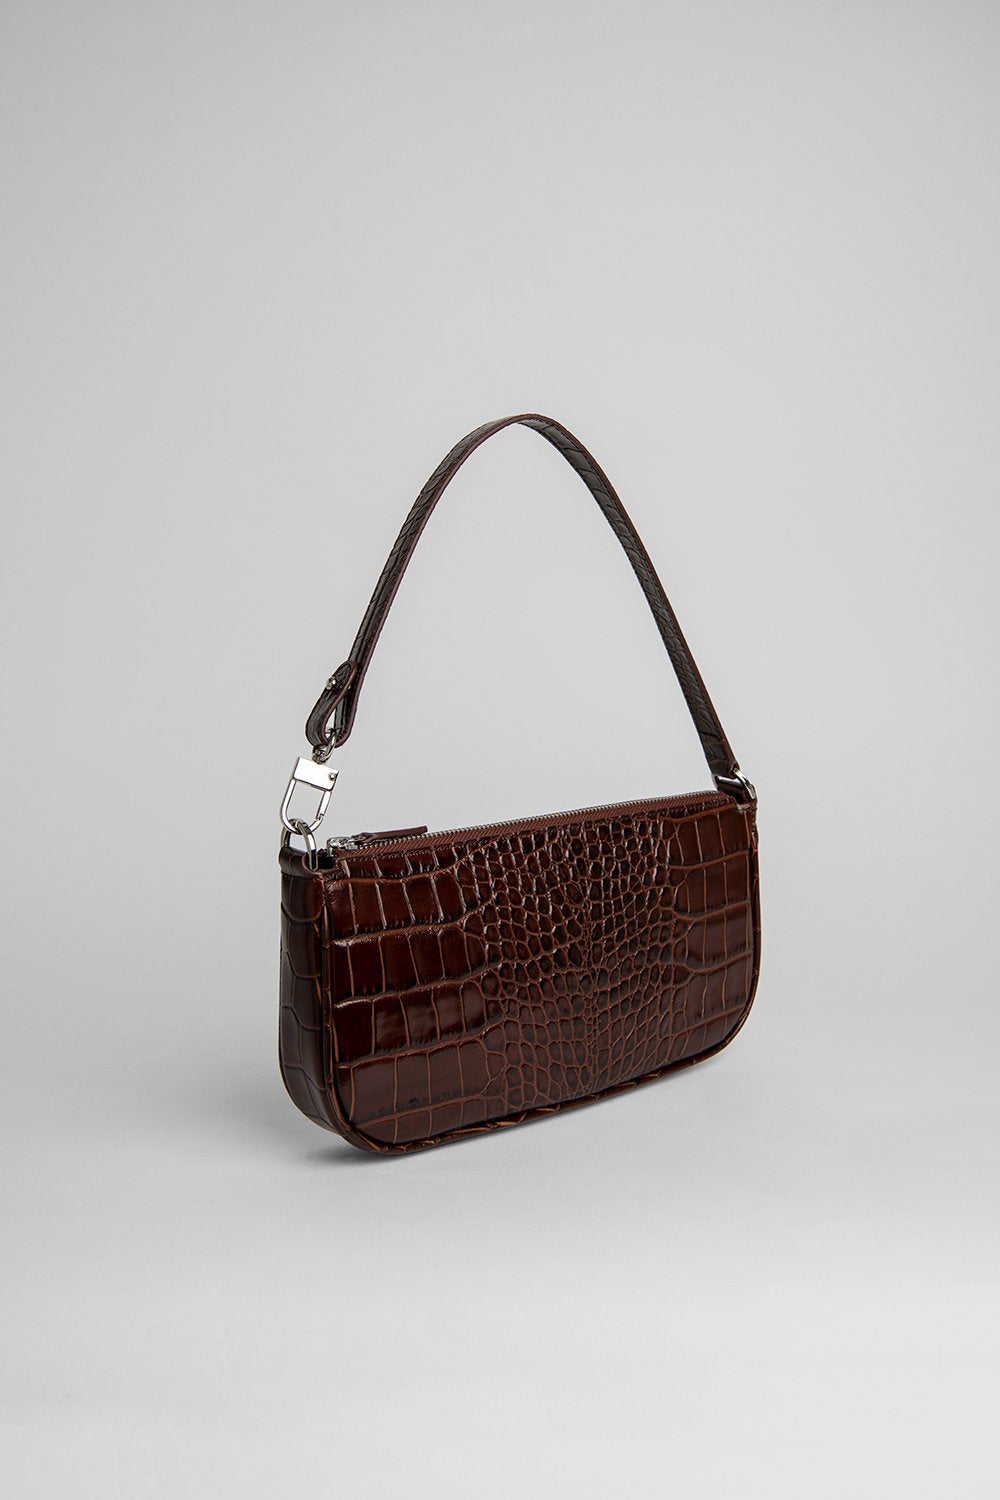 BY FAR RACHEL NUTELLA CROCO EMBOSSED LEATHER